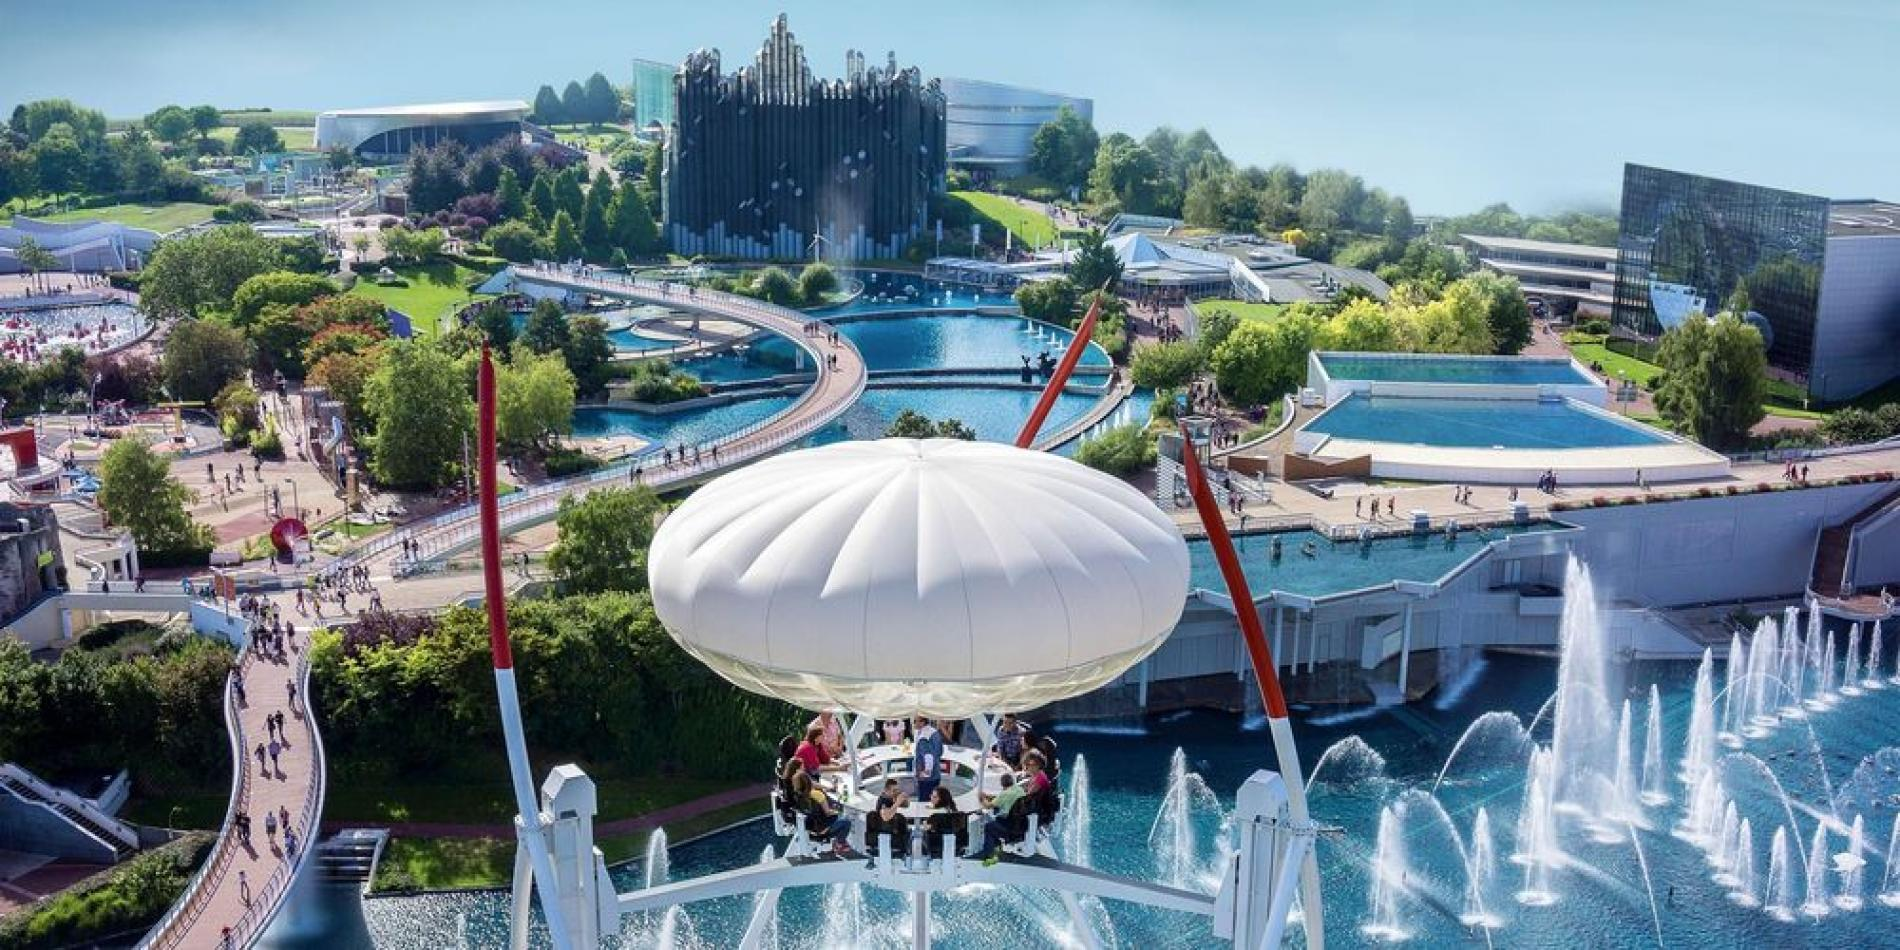 Futuroscope in Poitiers